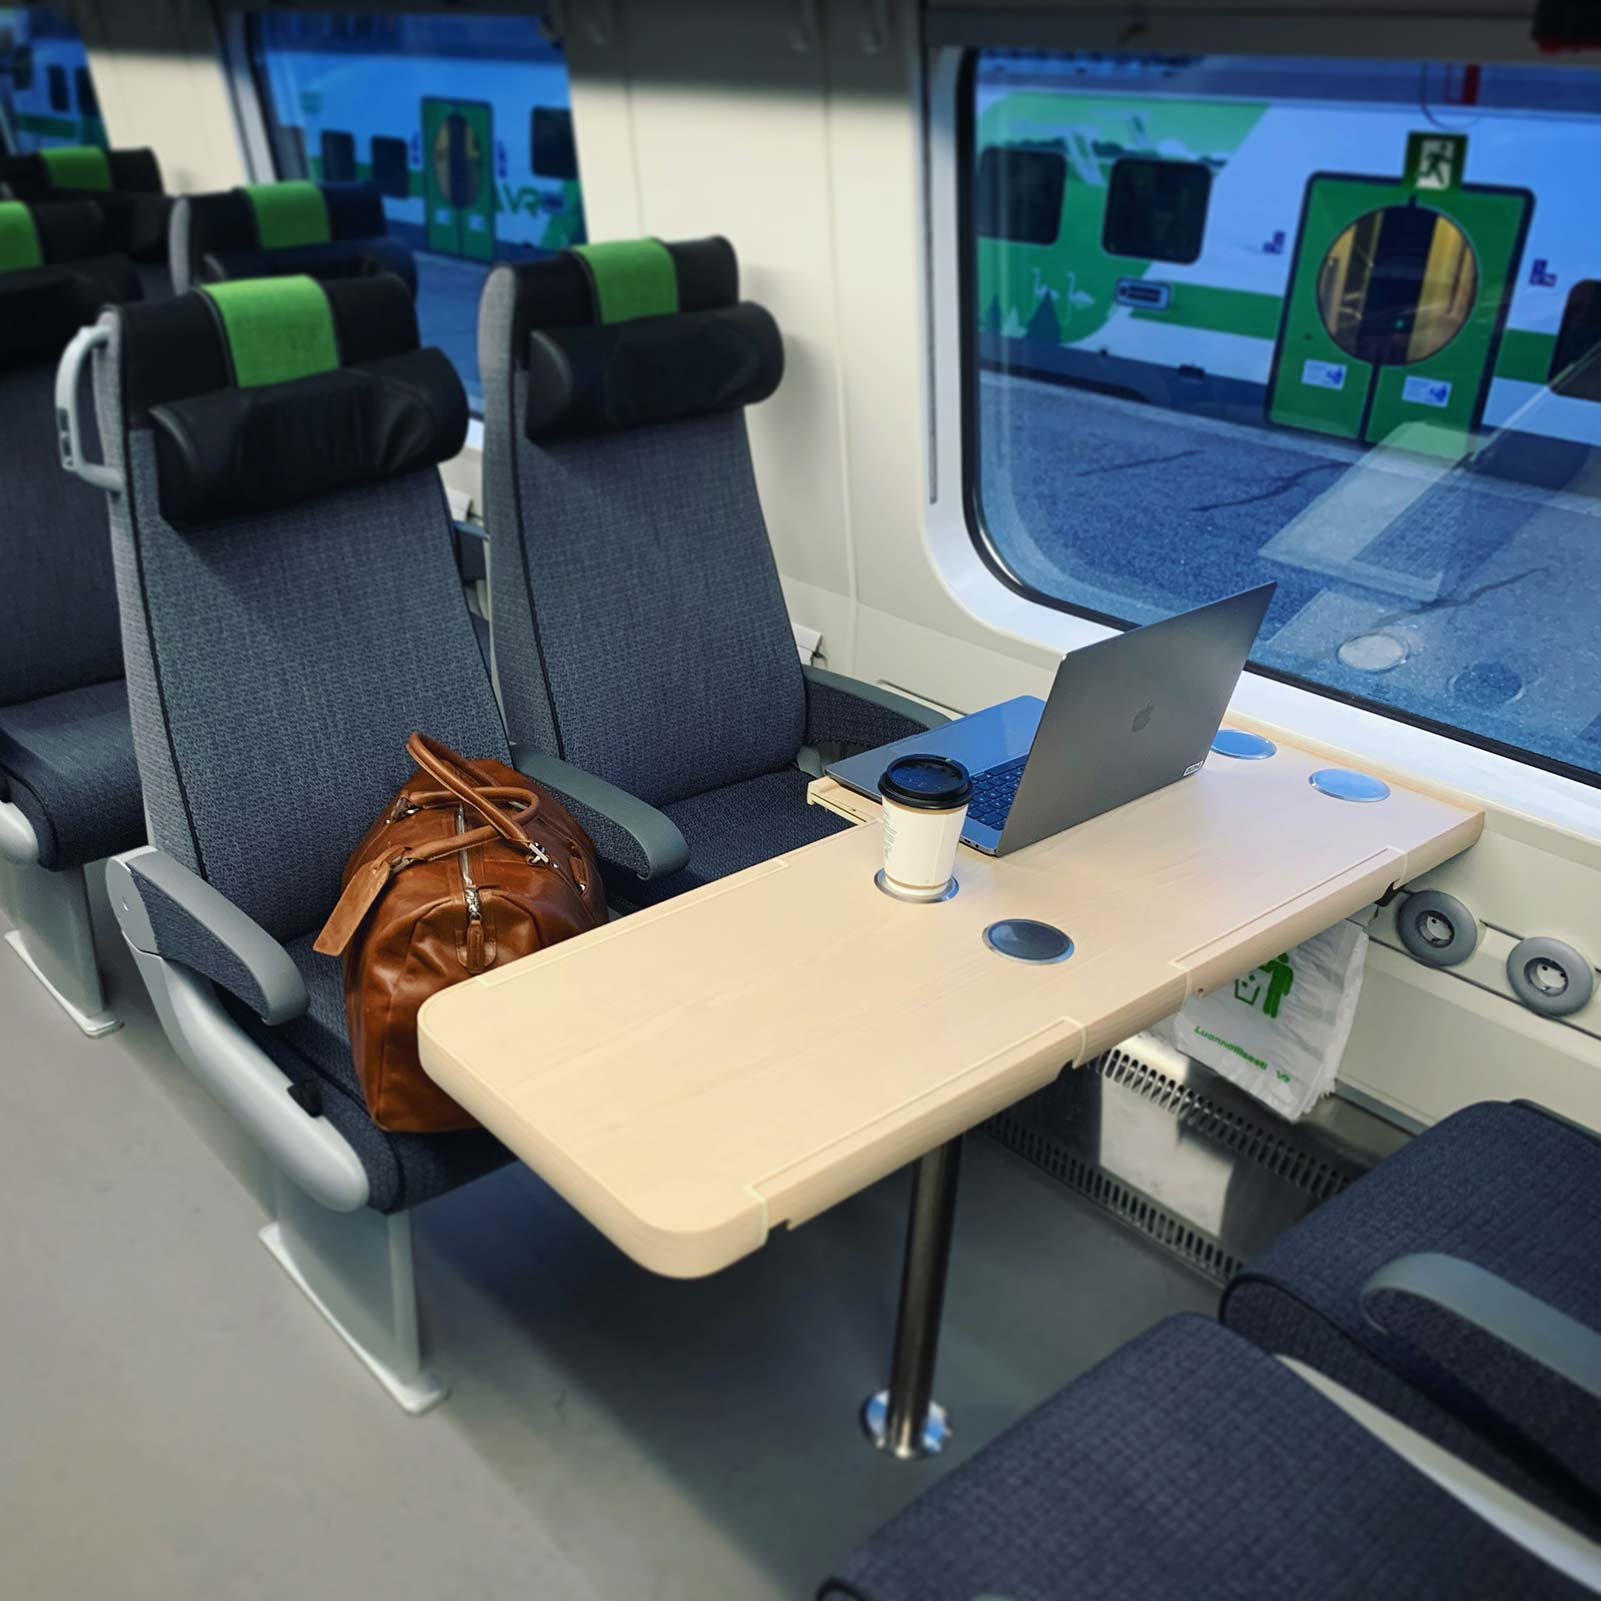 Photo from a train with a laptop on a table